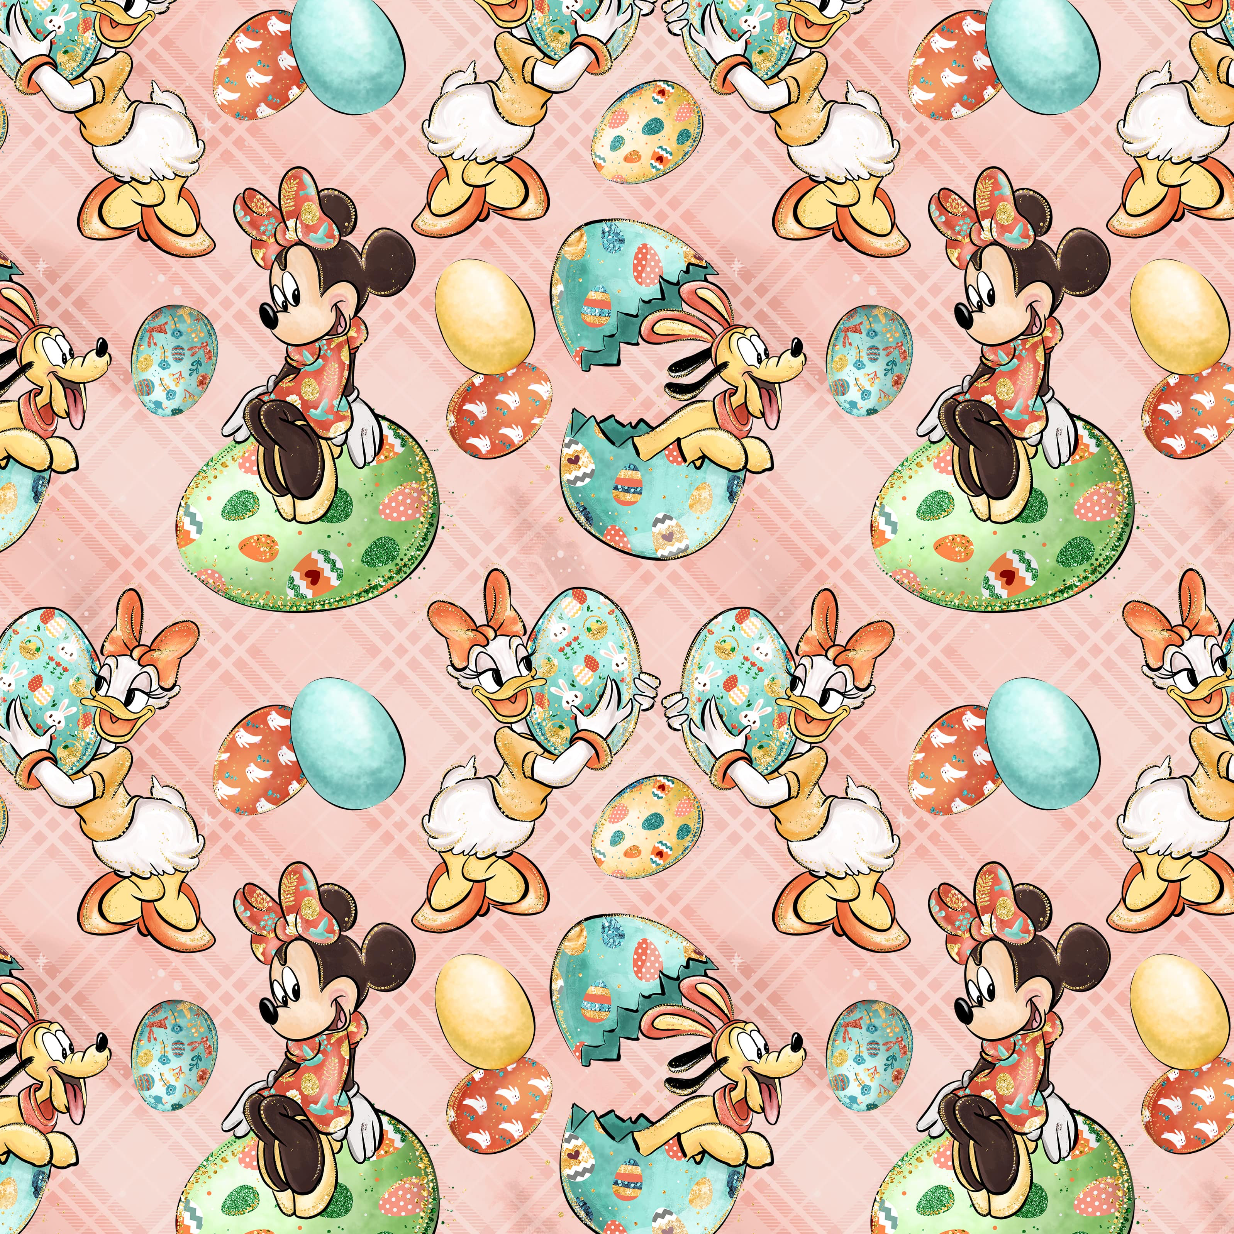 PRE ORDER - Minnie Easter Pink - Digital Fabric Print